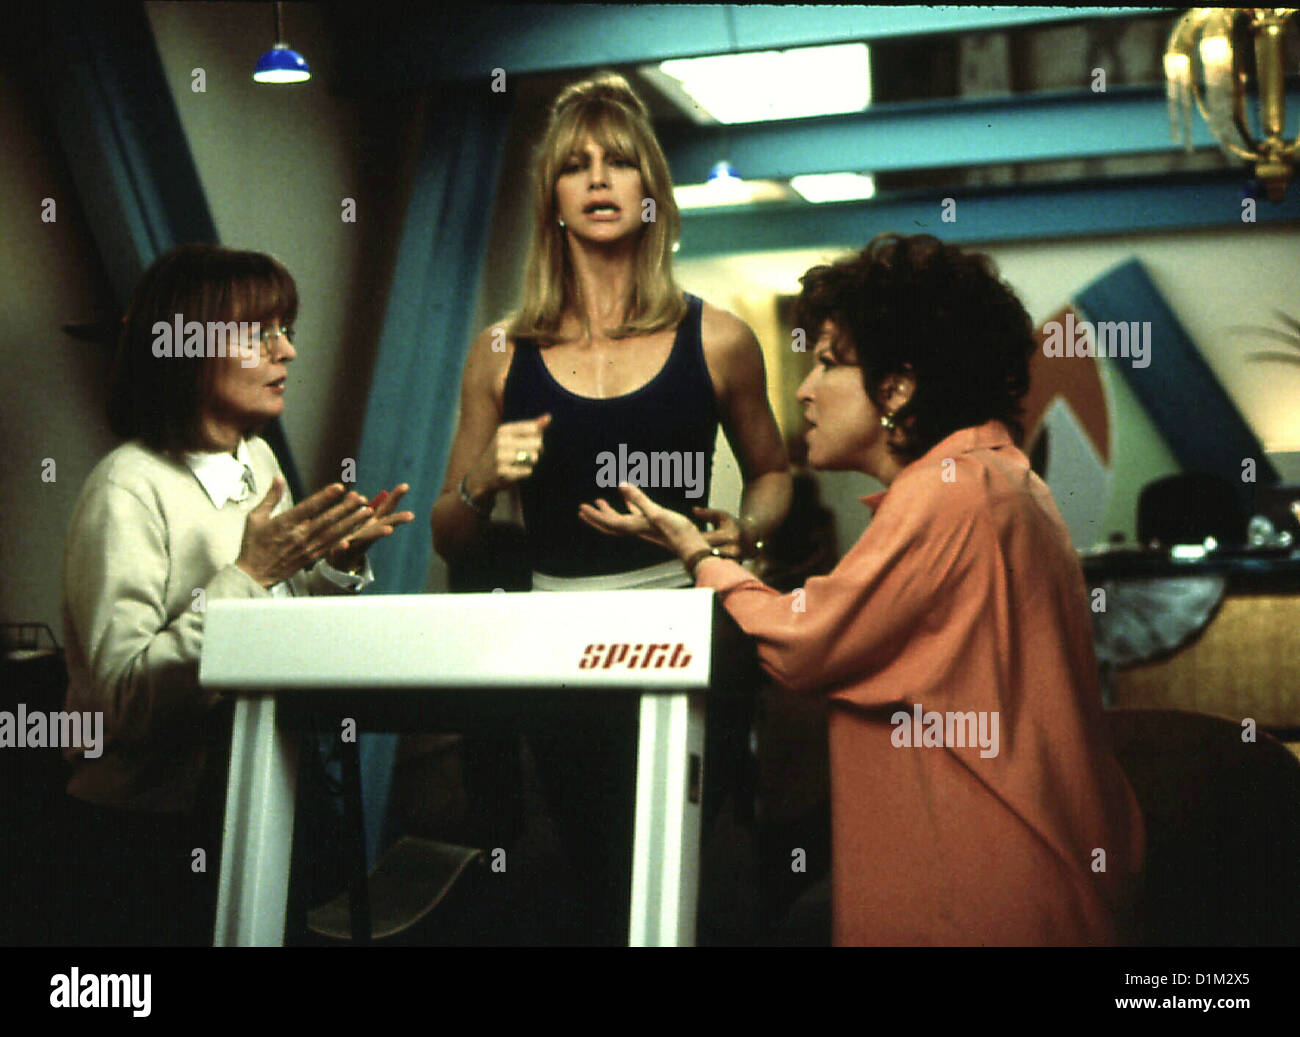 First Wives Club High Resolution Stock Photography and ...